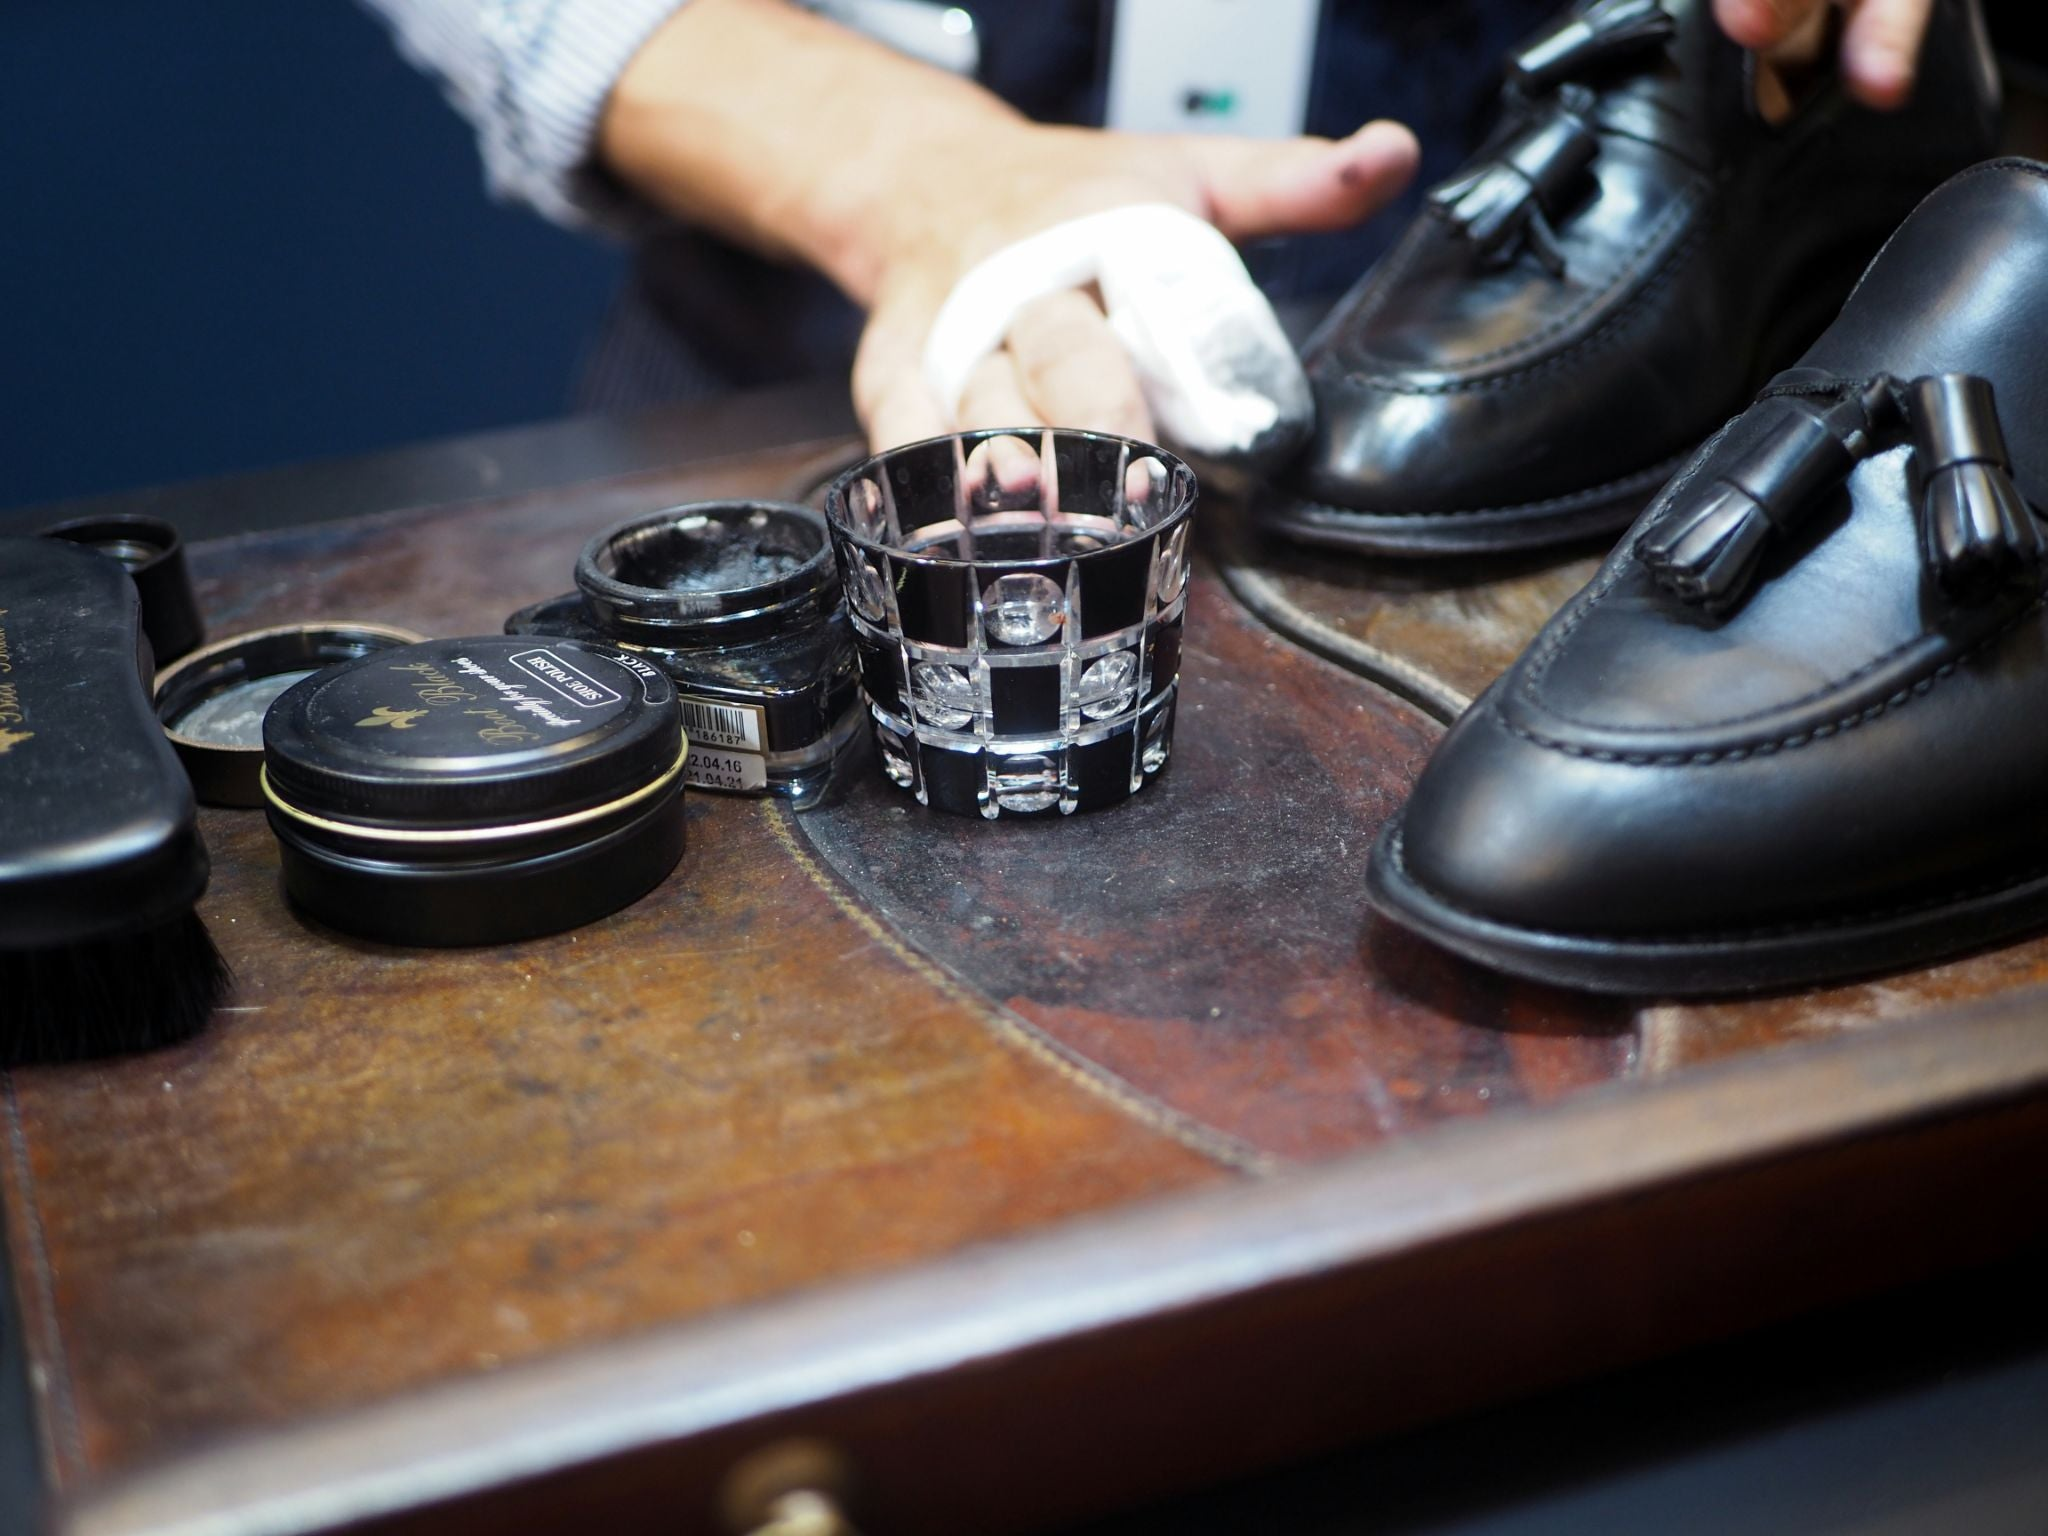 DLA Black shoes guide - My black tassel loafers getting treatment at the Boot Black booth at Pitti Uomo.